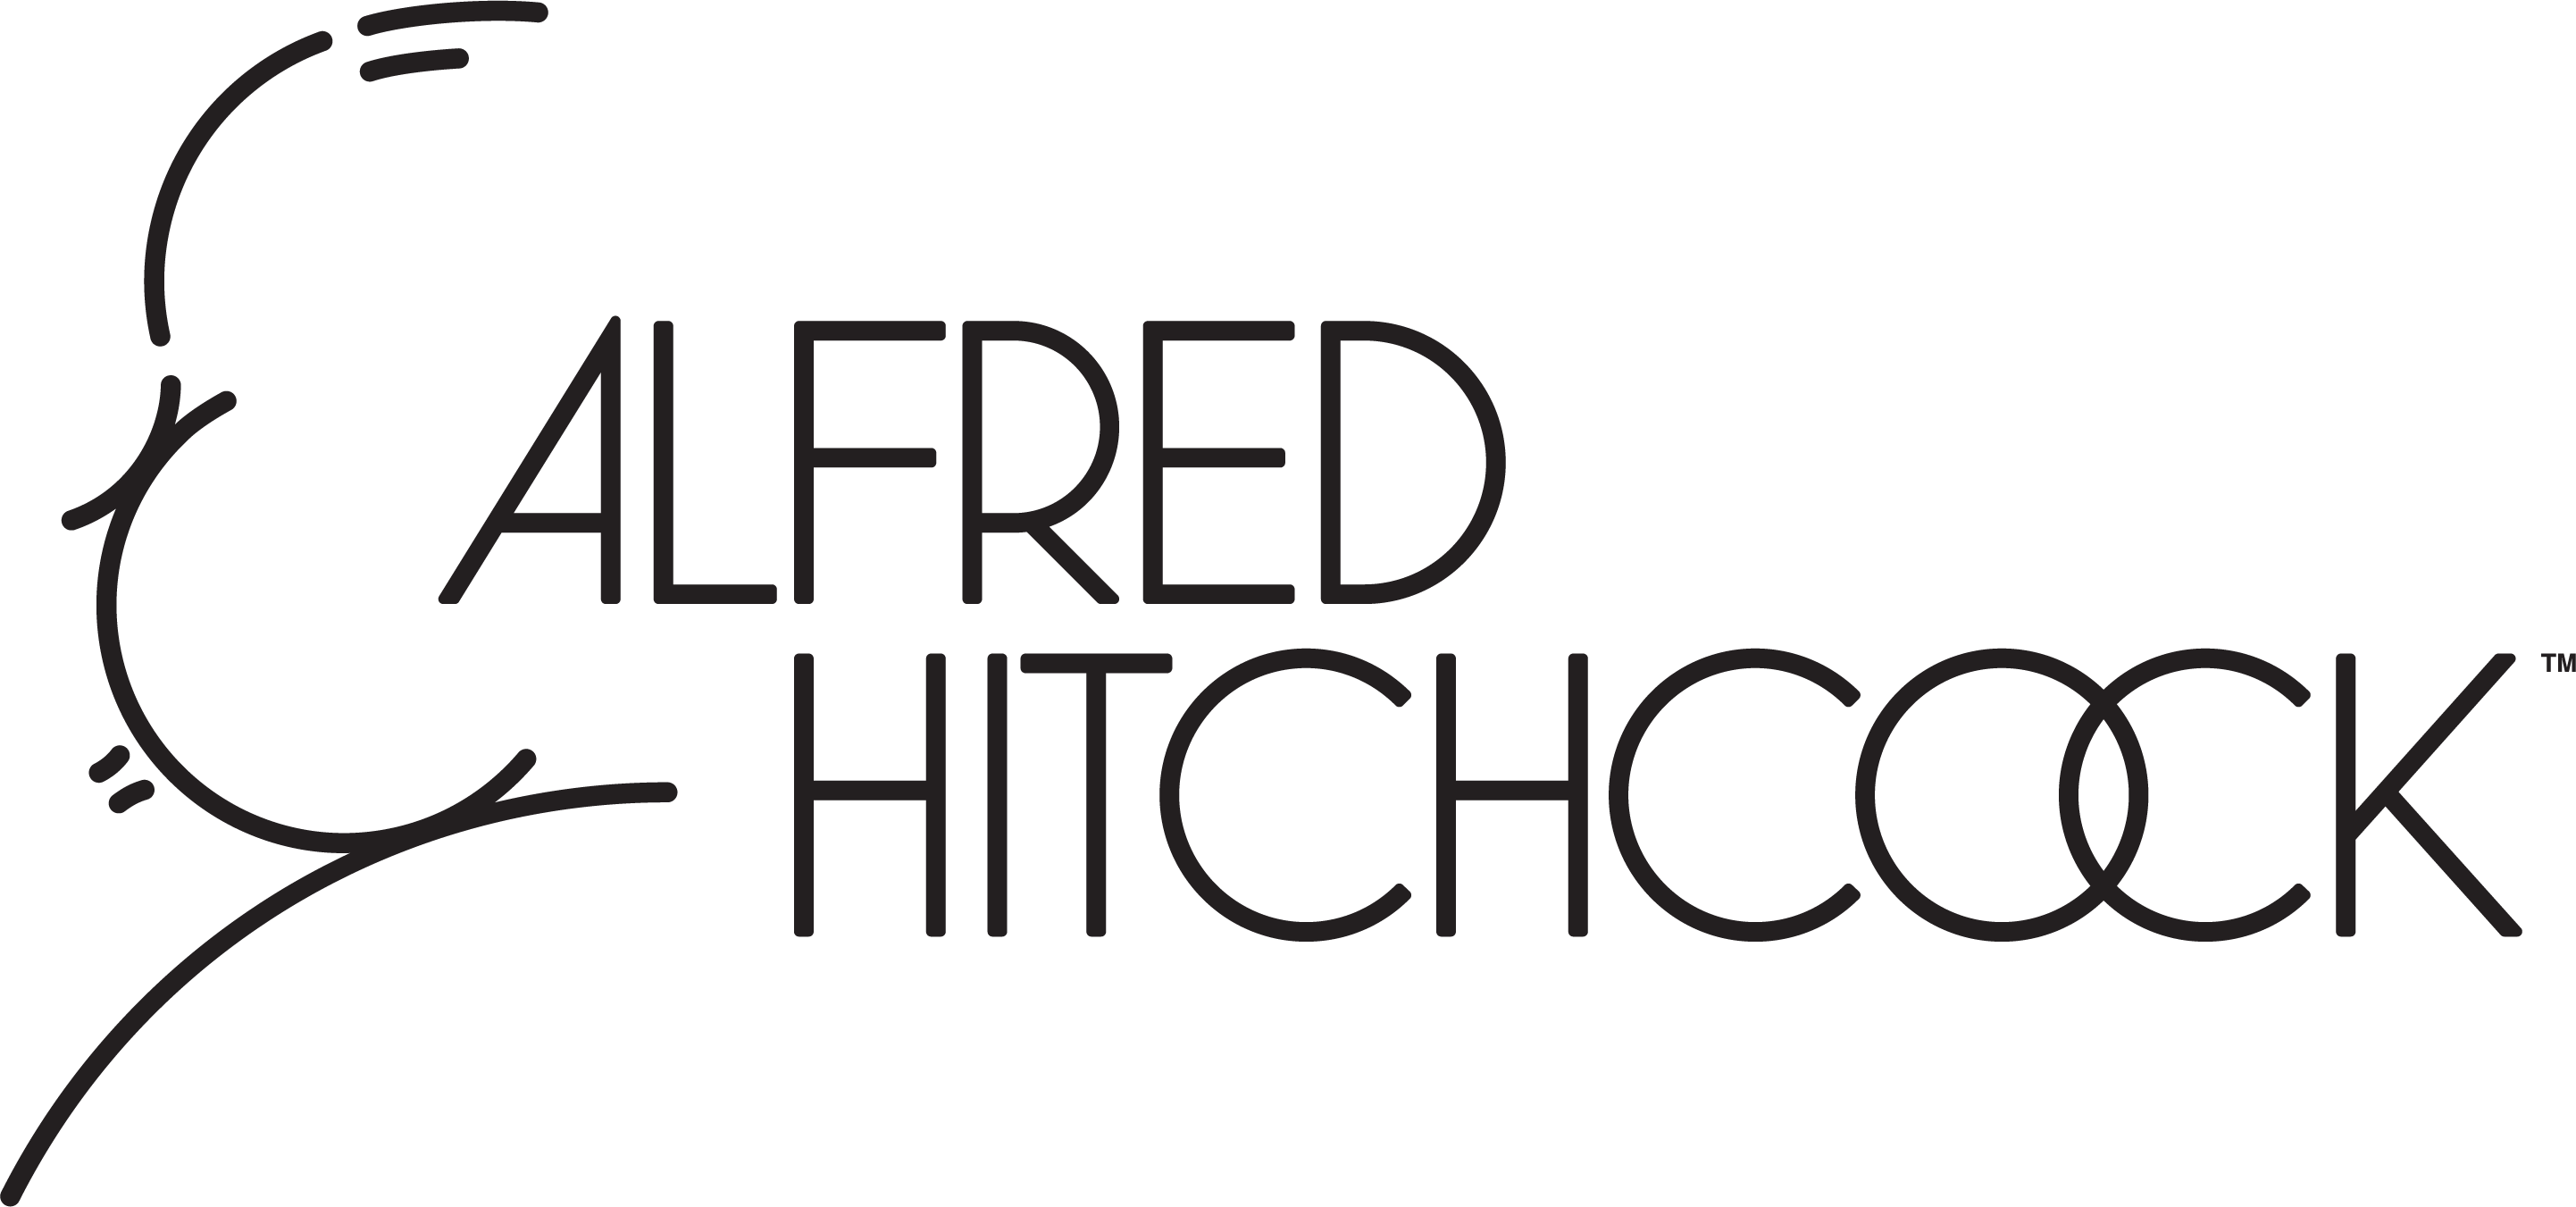 hitchcock_logo_03.png